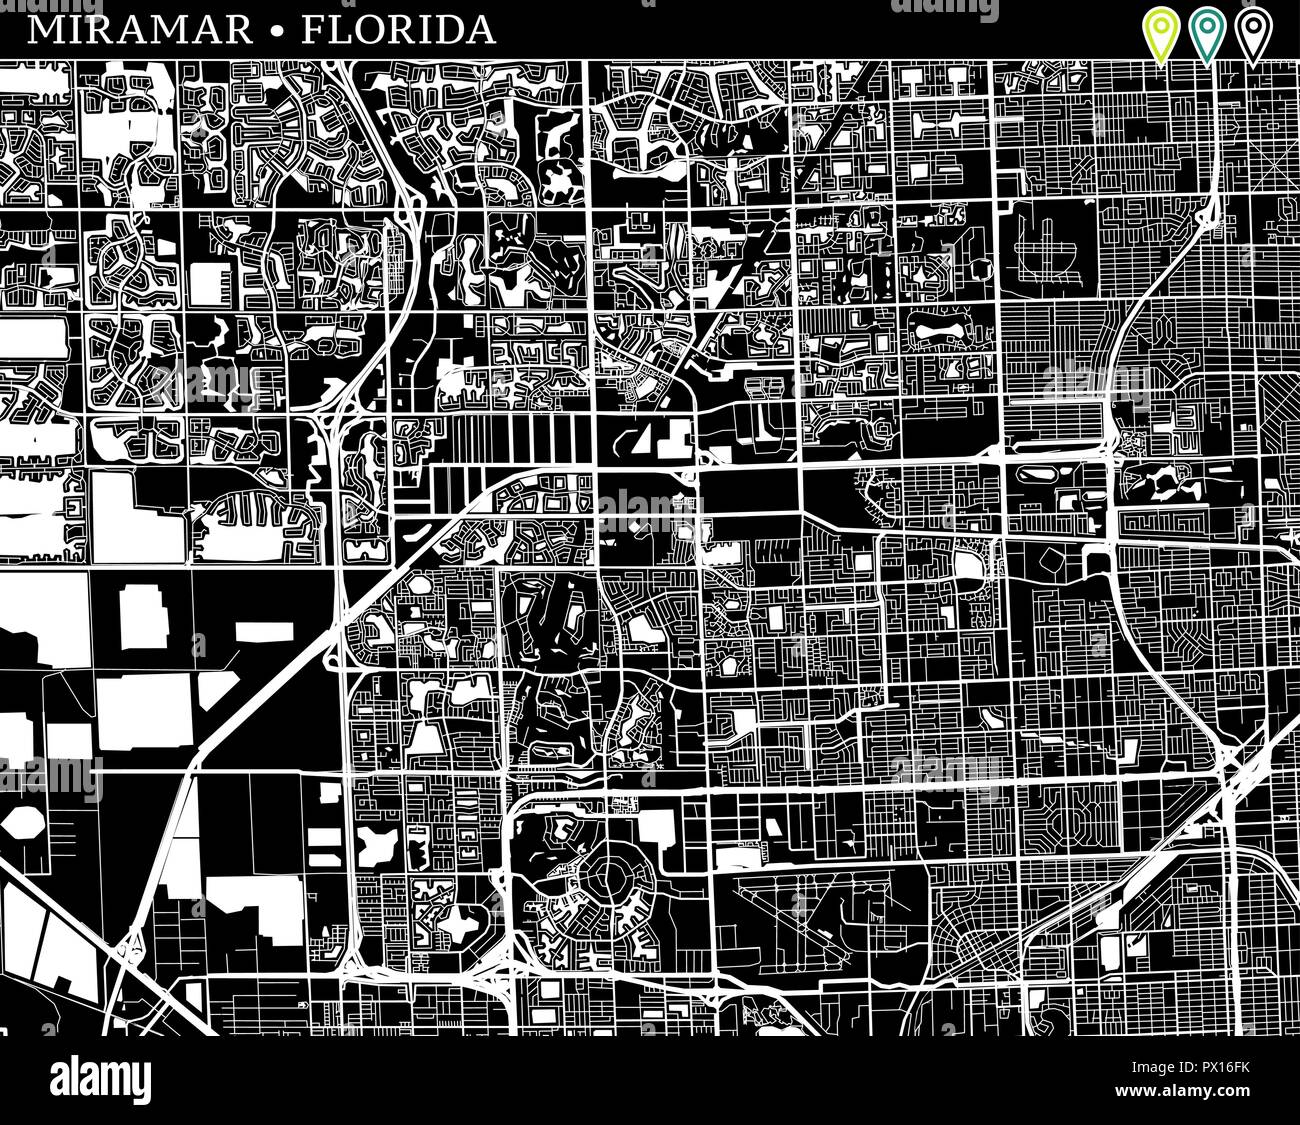 Simple Map Of Miramar Florida Usa Black And White Version For